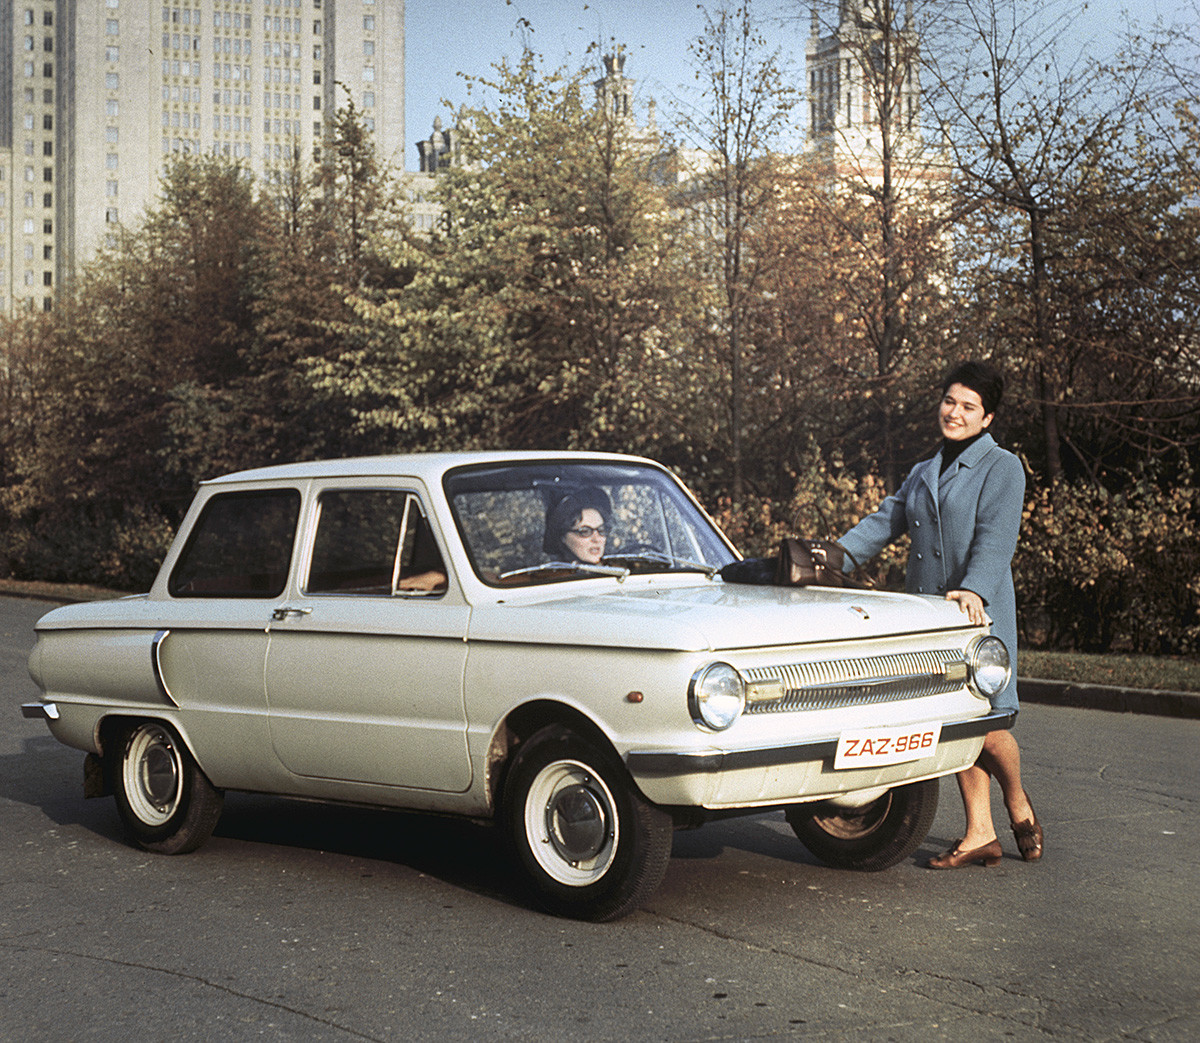 The 'ZAZ-966' from the Zaporozhye Automobile Factory (known simply as the 'Zaporozhets'), produced in 1970.